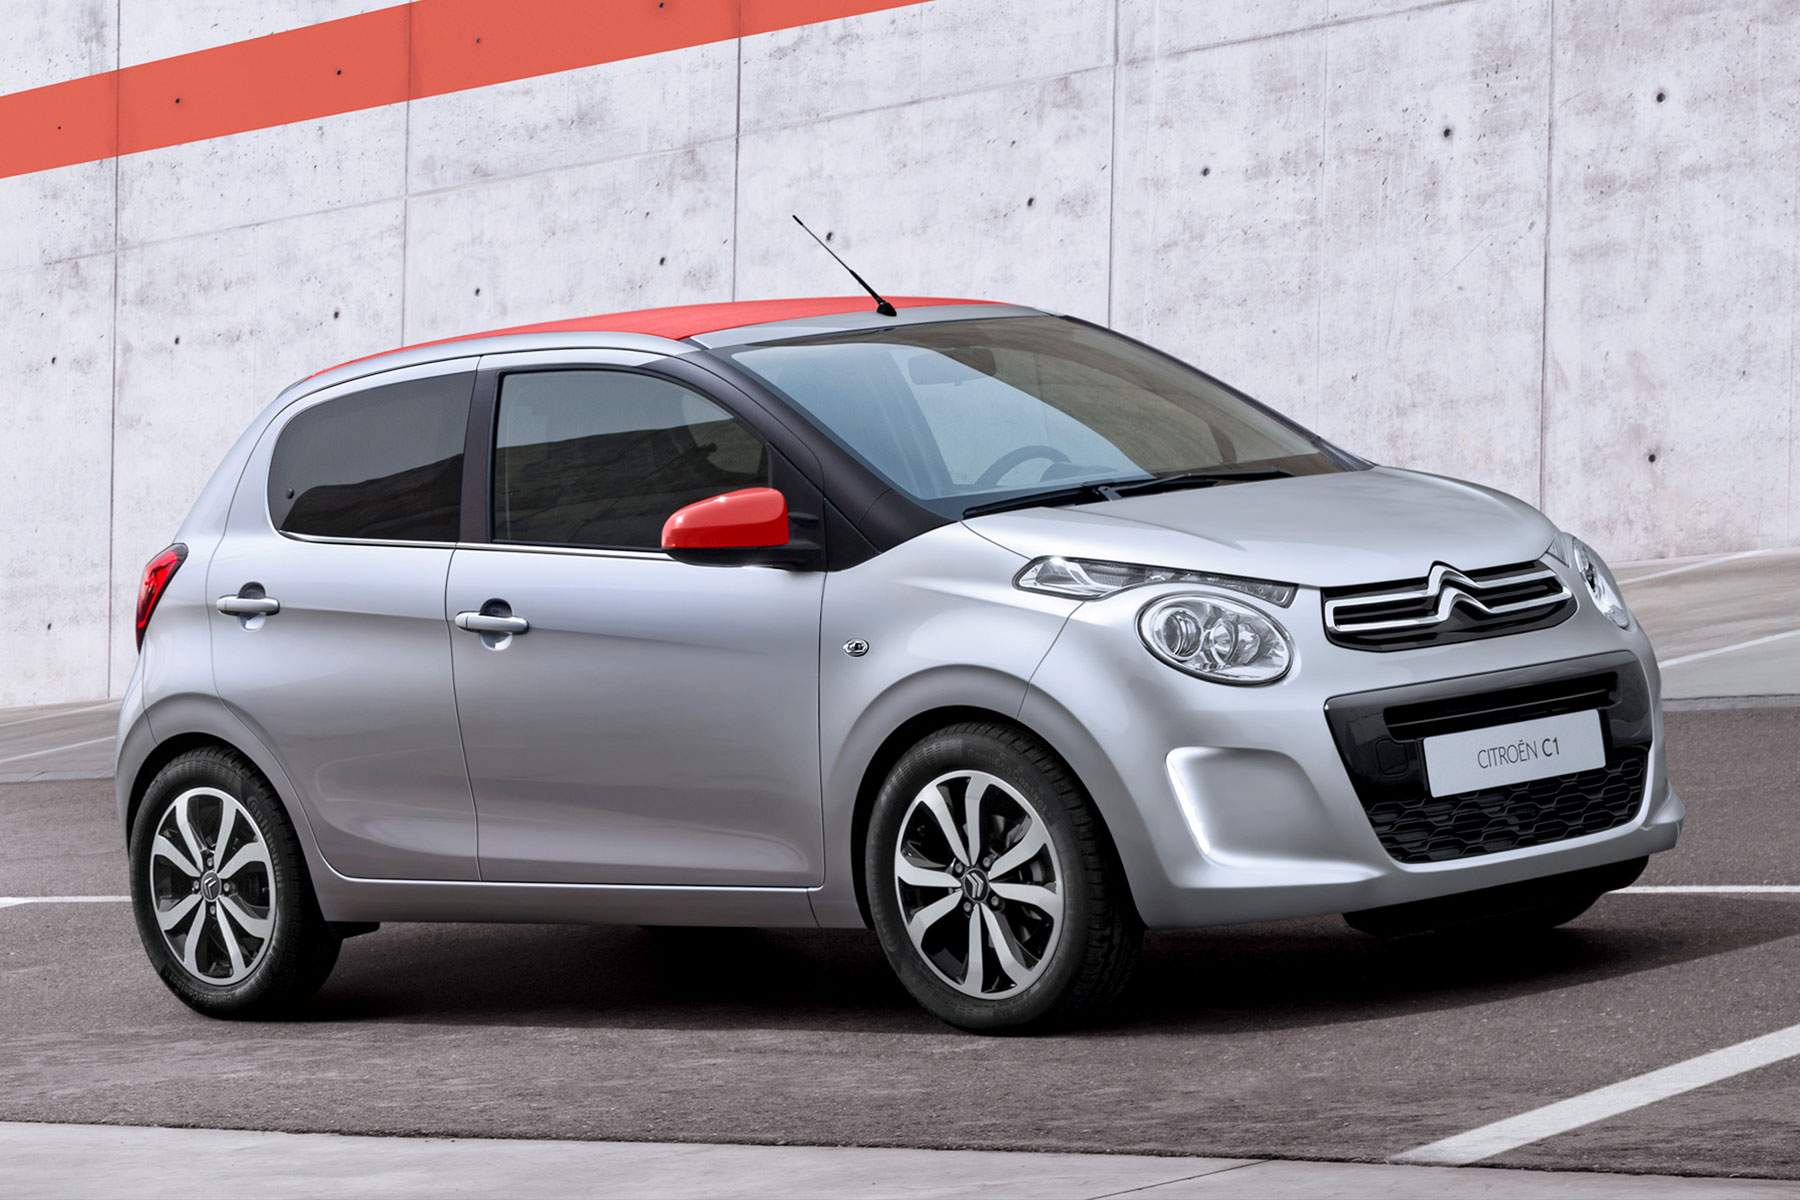 The 20 best first cars: Citroen C1